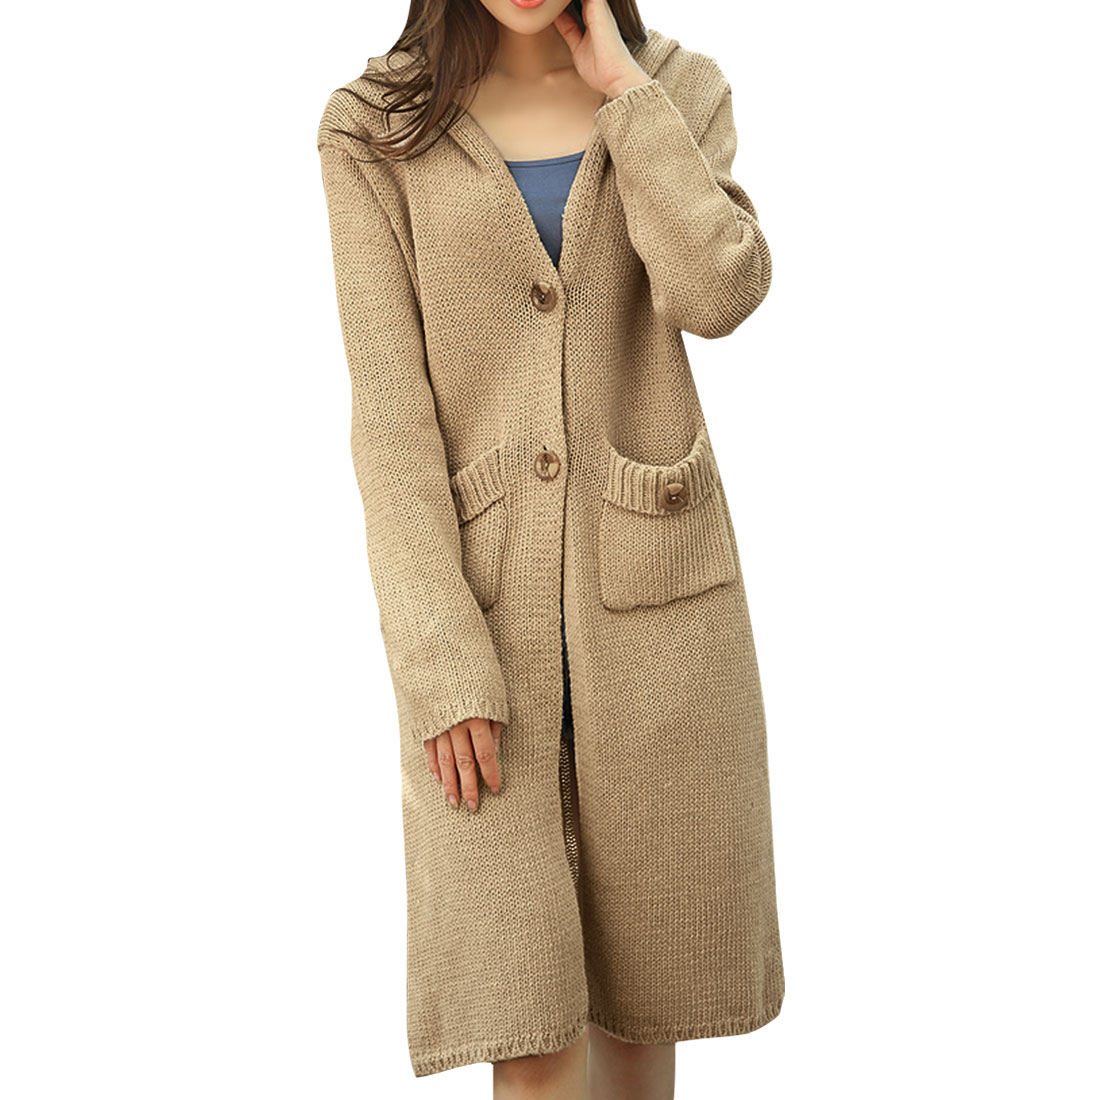 Allegra K Women's Buttoned Hooded Sweater Coat Beige (Size XS / 2)